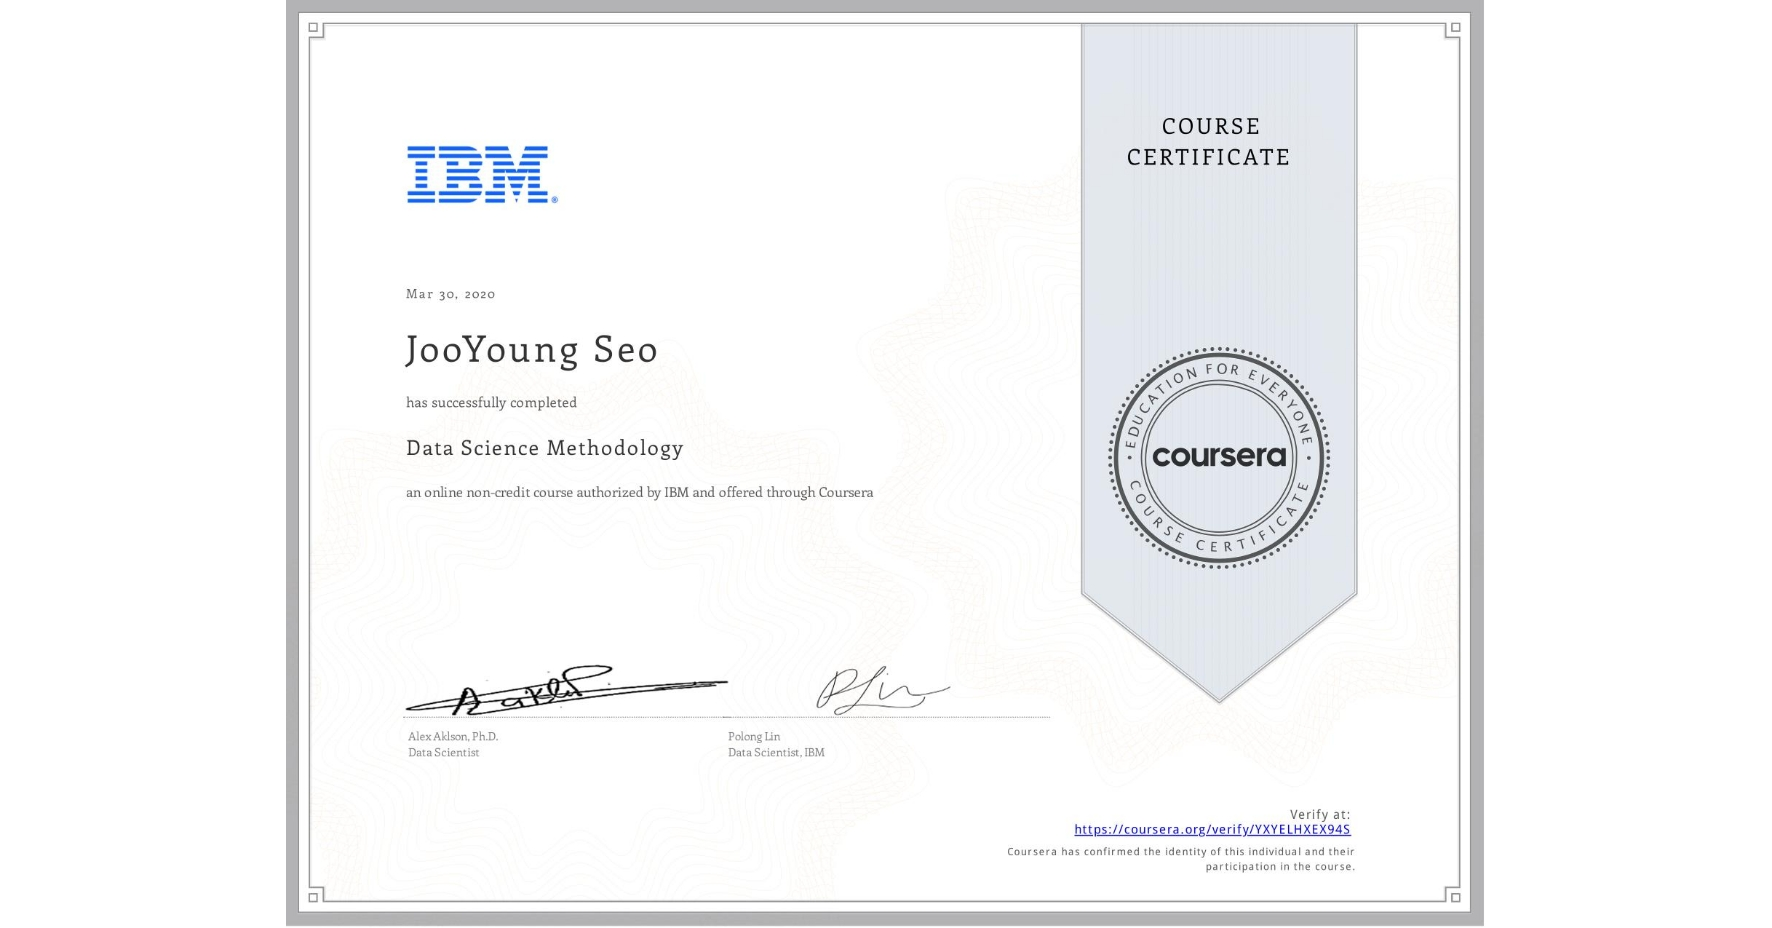 View certificate for JooYoung Seo, Data Science Methodology, an online non-credit course authorized by IBM and offered through Coursera